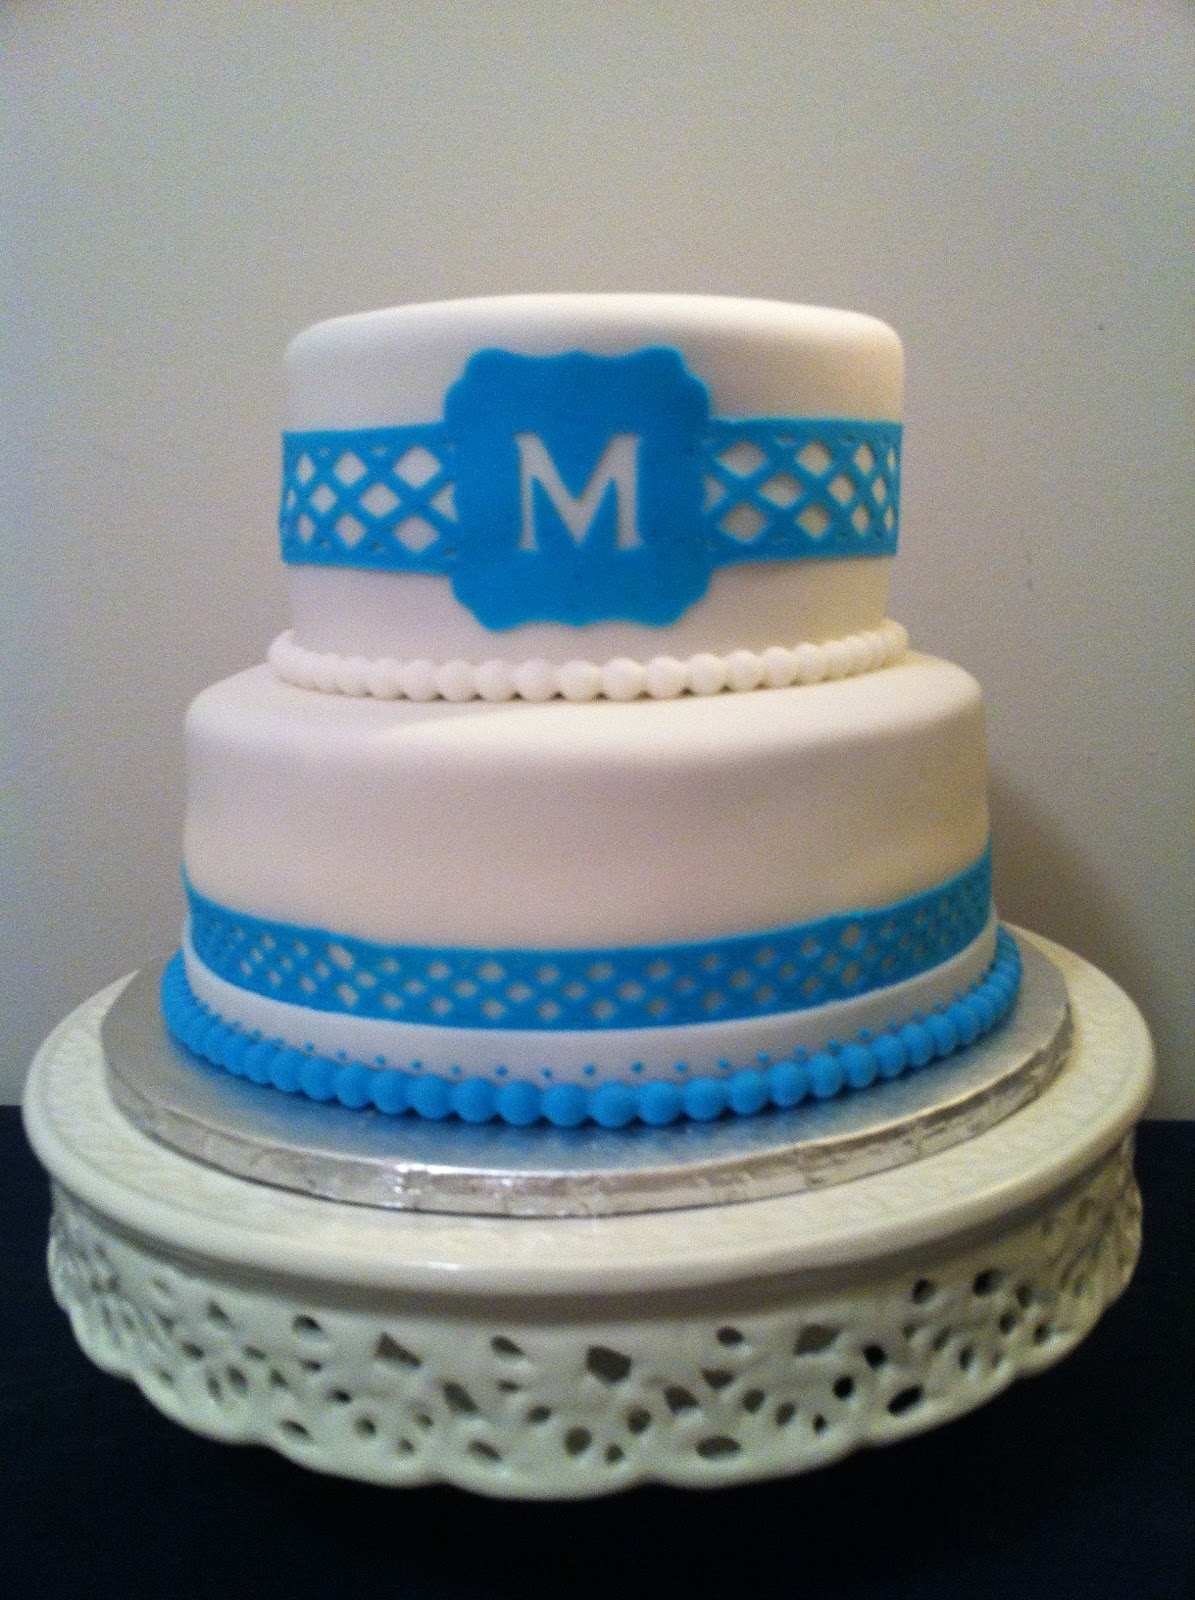 Delicious Delights Nj Blue And White Monogram Birthday Cake